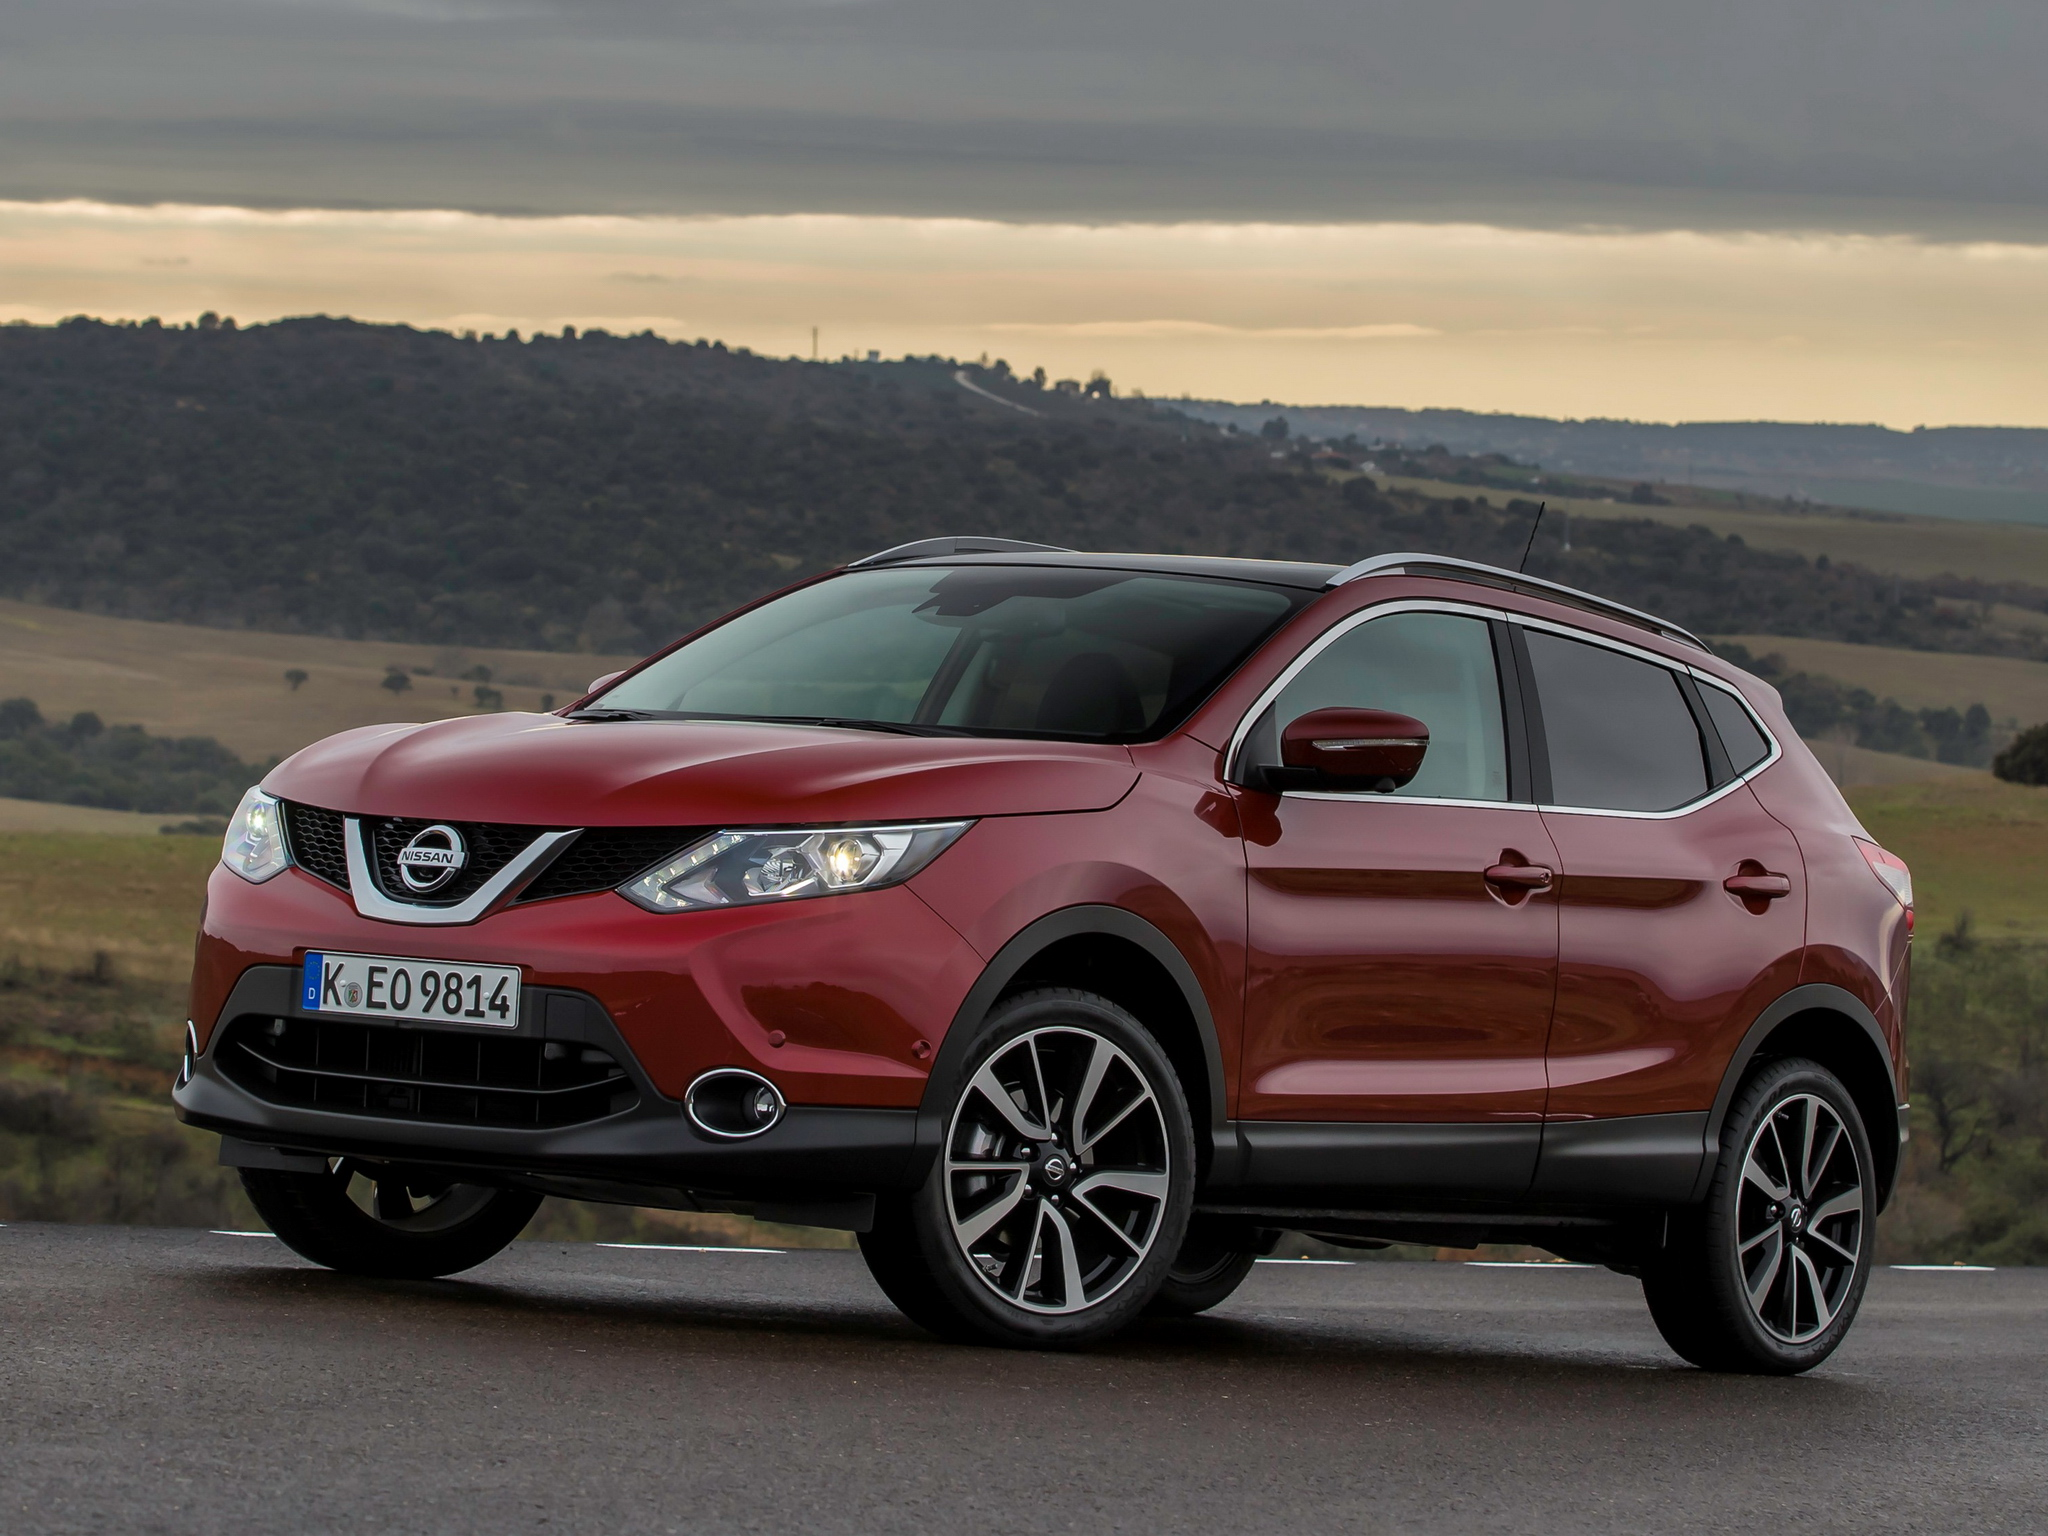 has vs drive consumer pizzazz review models suv reports downsized suvs rogue nissan first sport